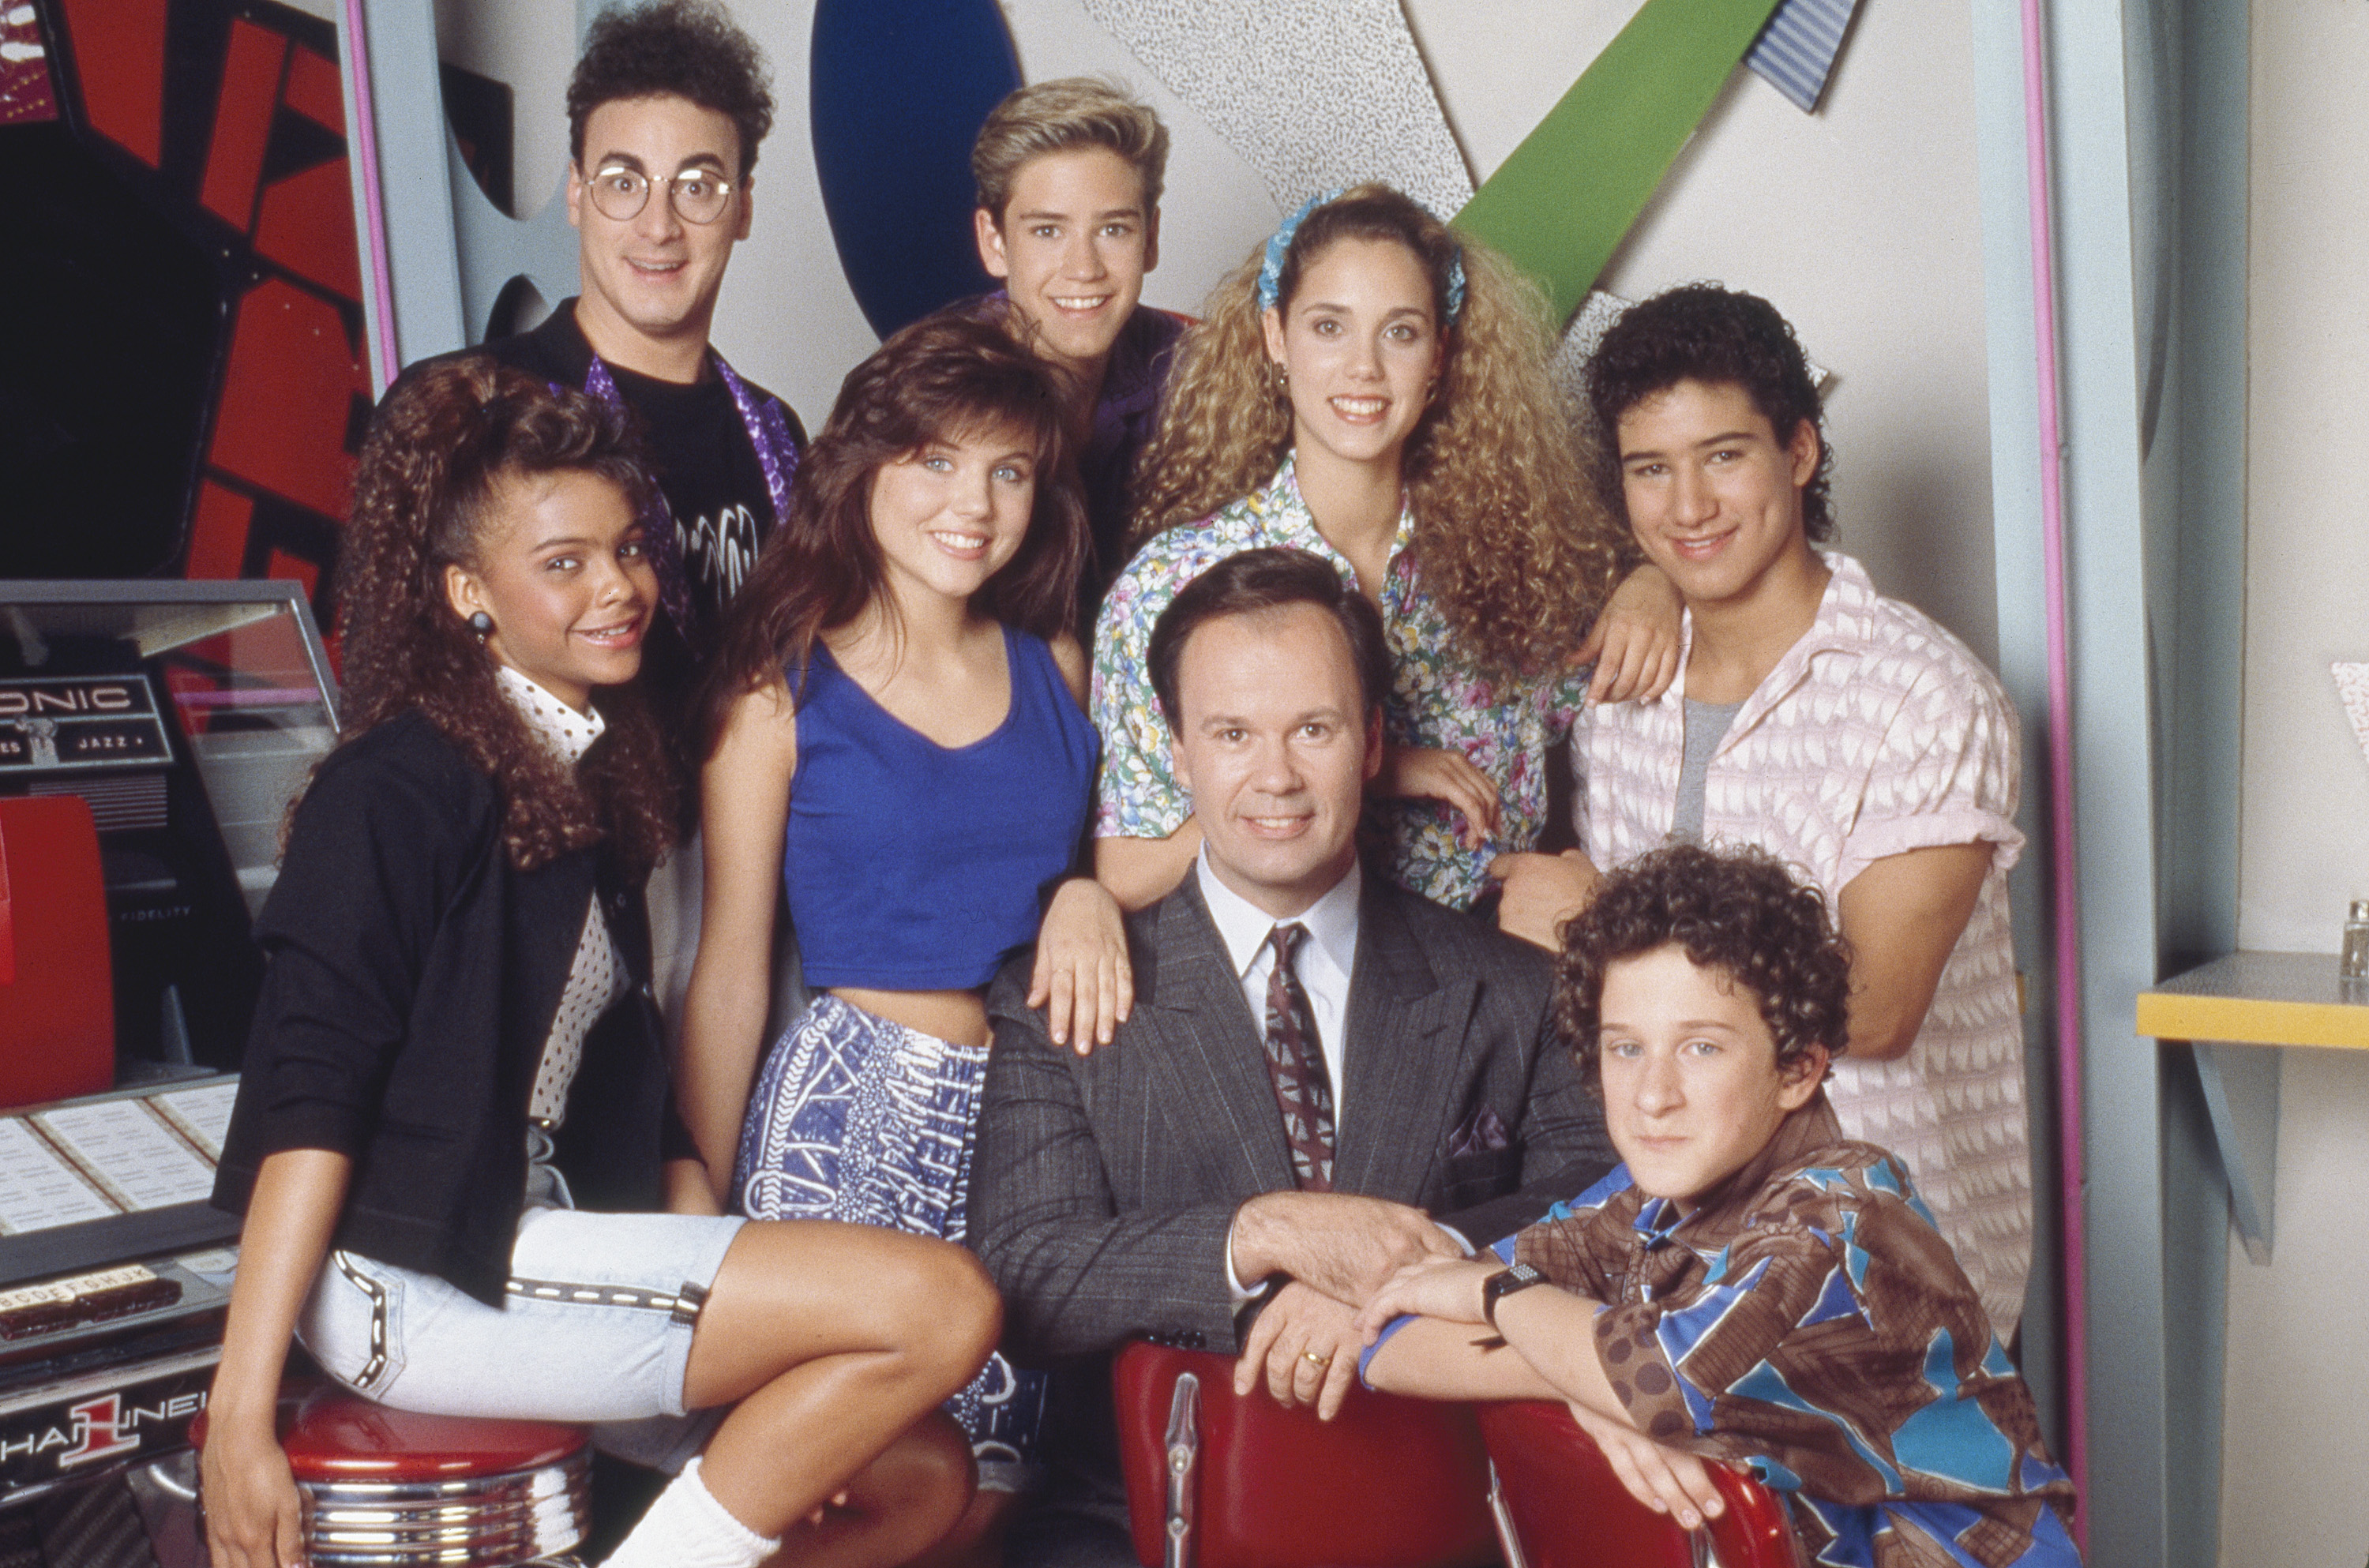 Saved by the Bell classic cast